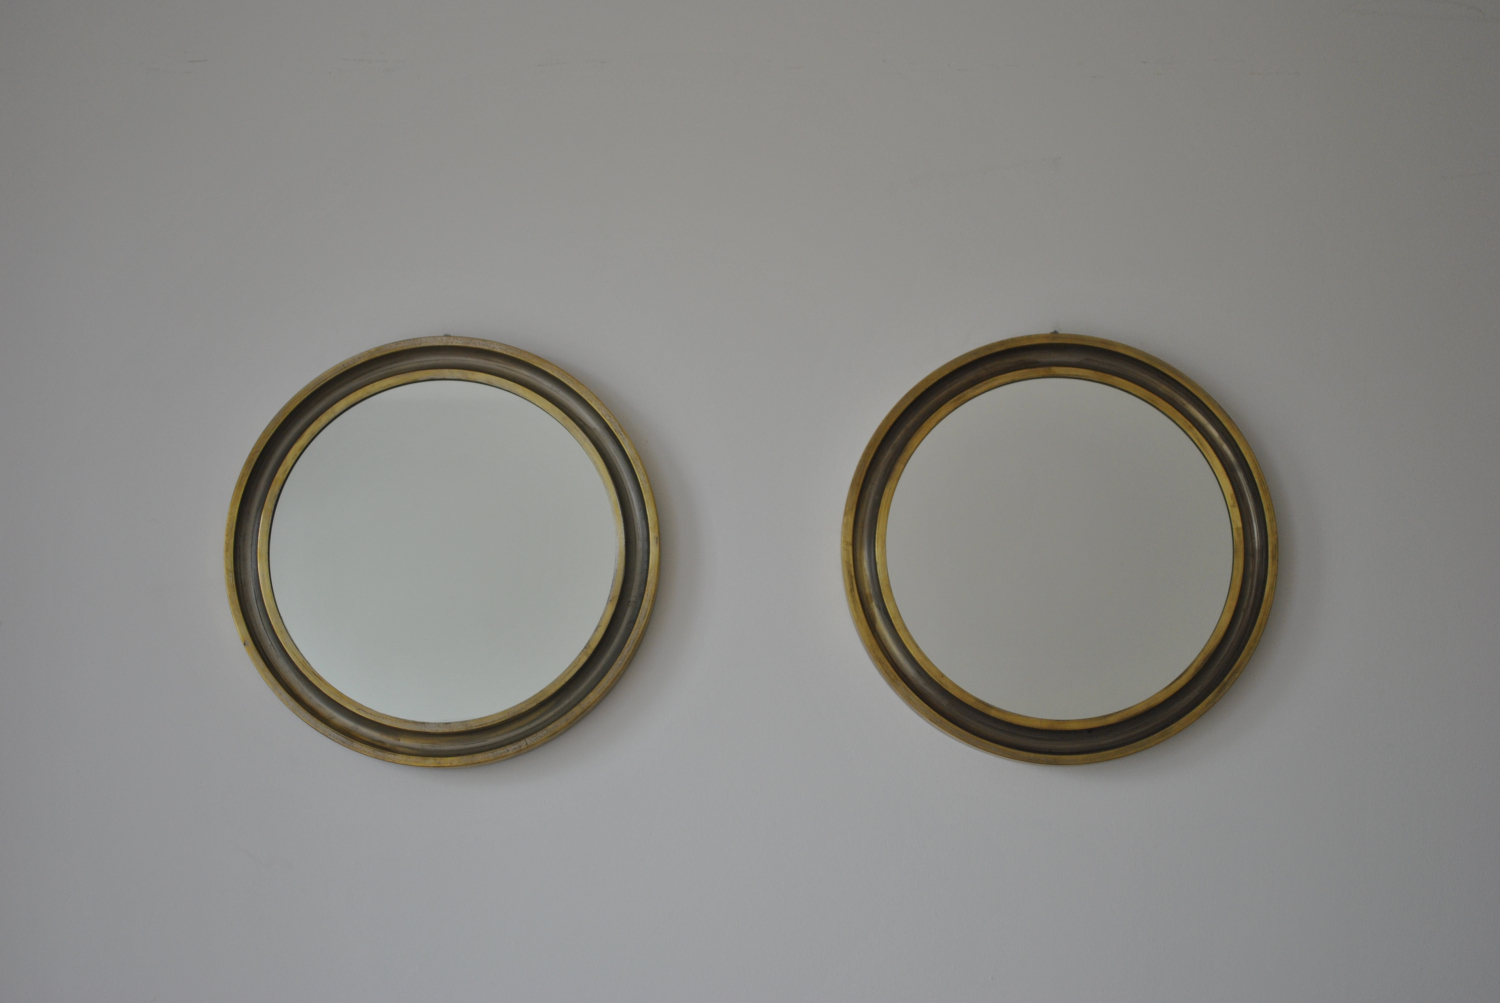 Pair of Brass Circular Mirrors